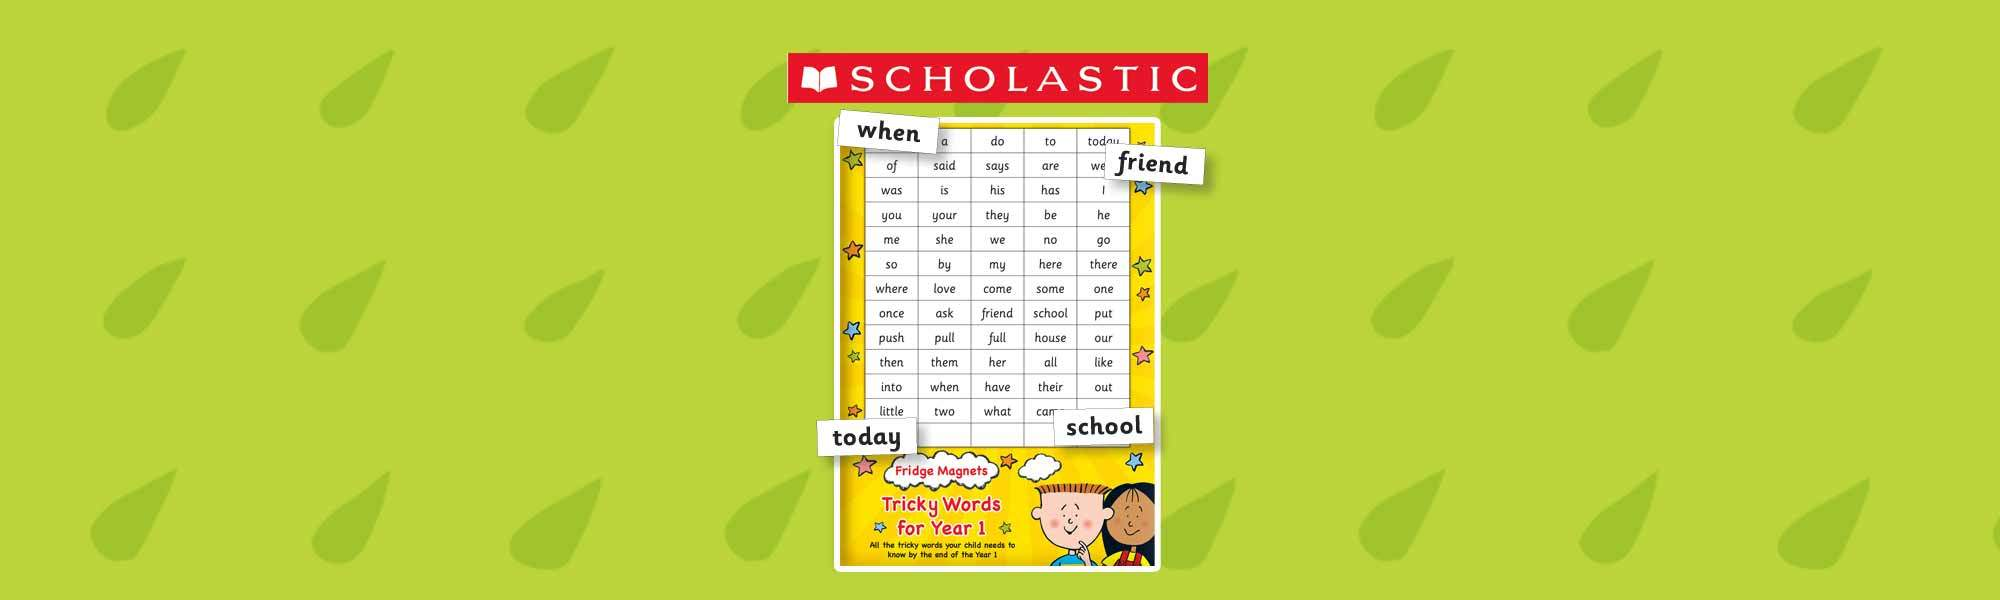 Little Bird 40% off Scholastic Magnets: Fridge Magnets - Tricky Words for Year 1